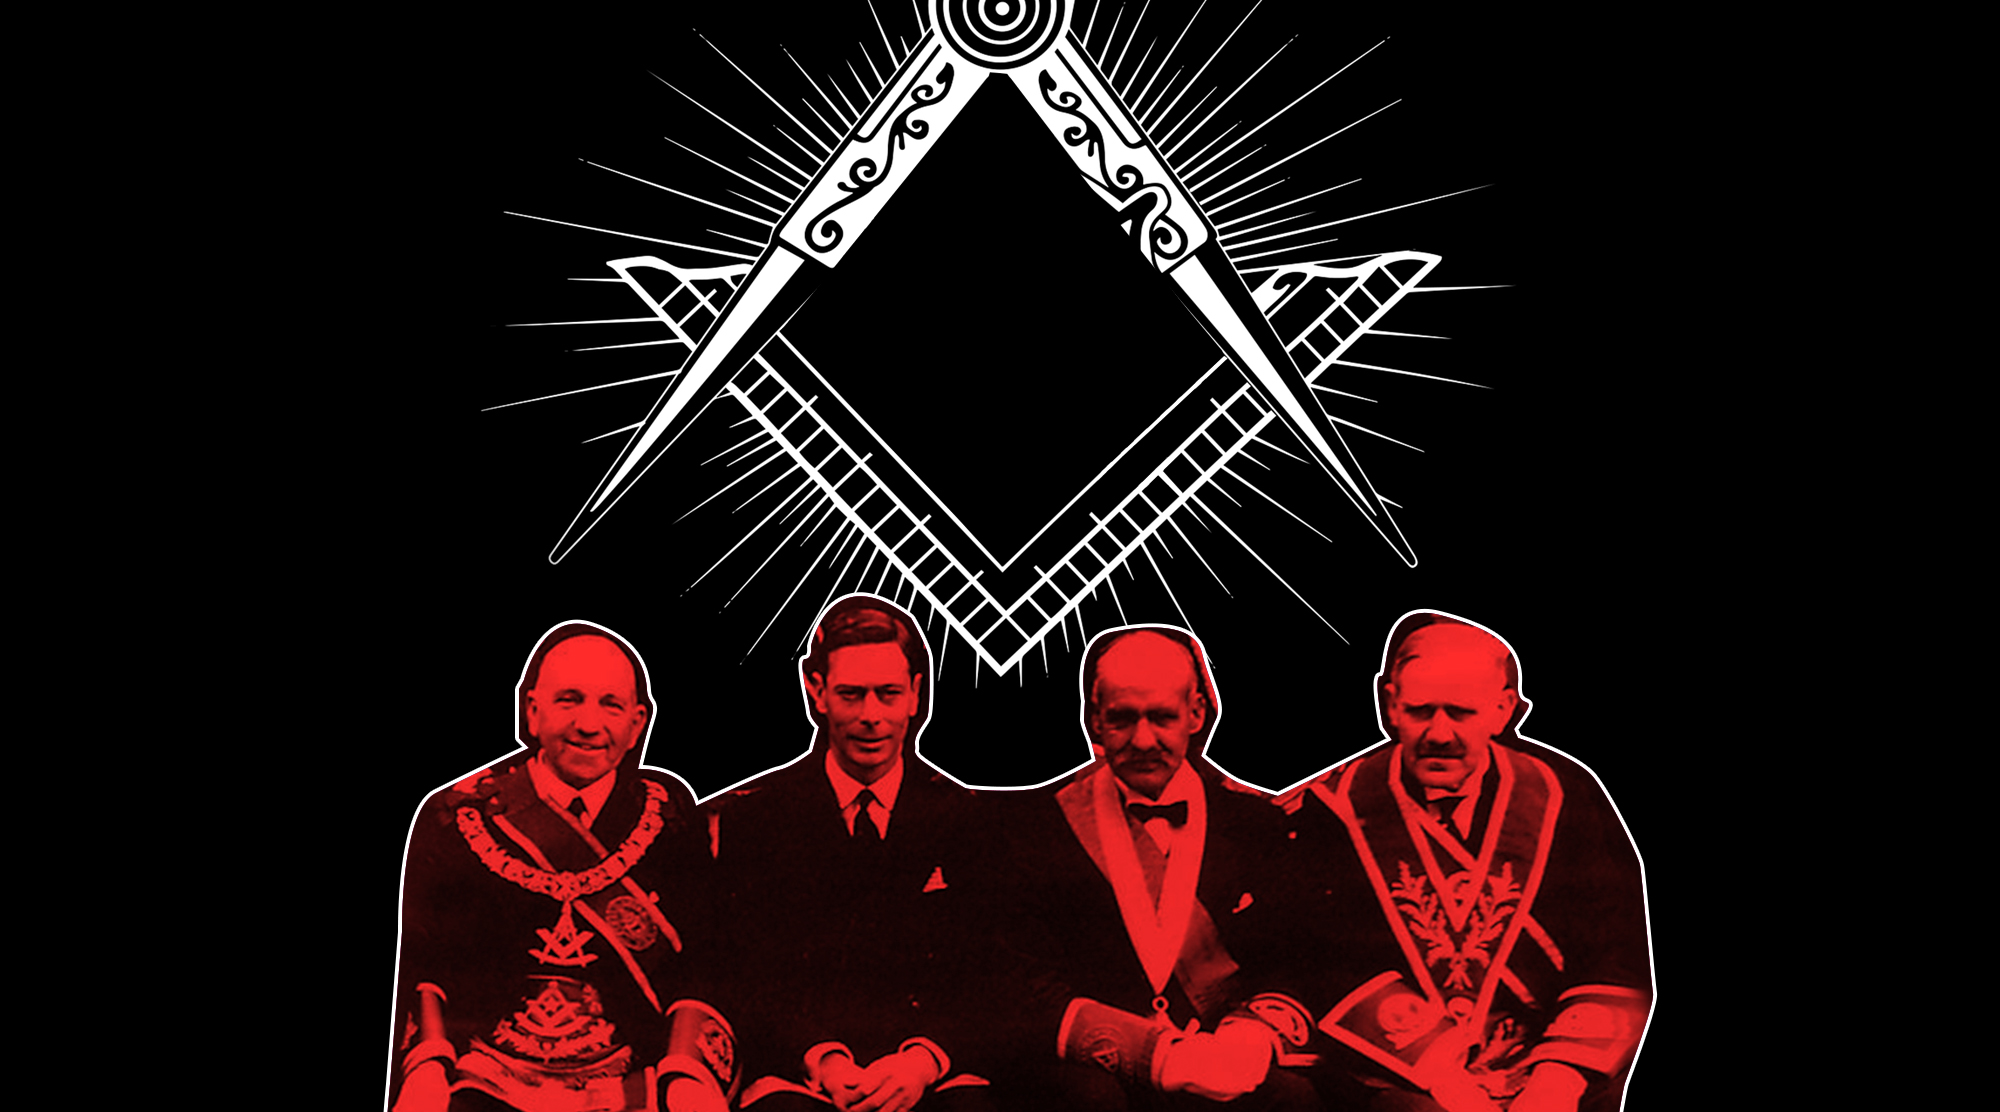 Sworn in Secrecy: What the QAnon and Freemasonry Conspiracies Have in Common